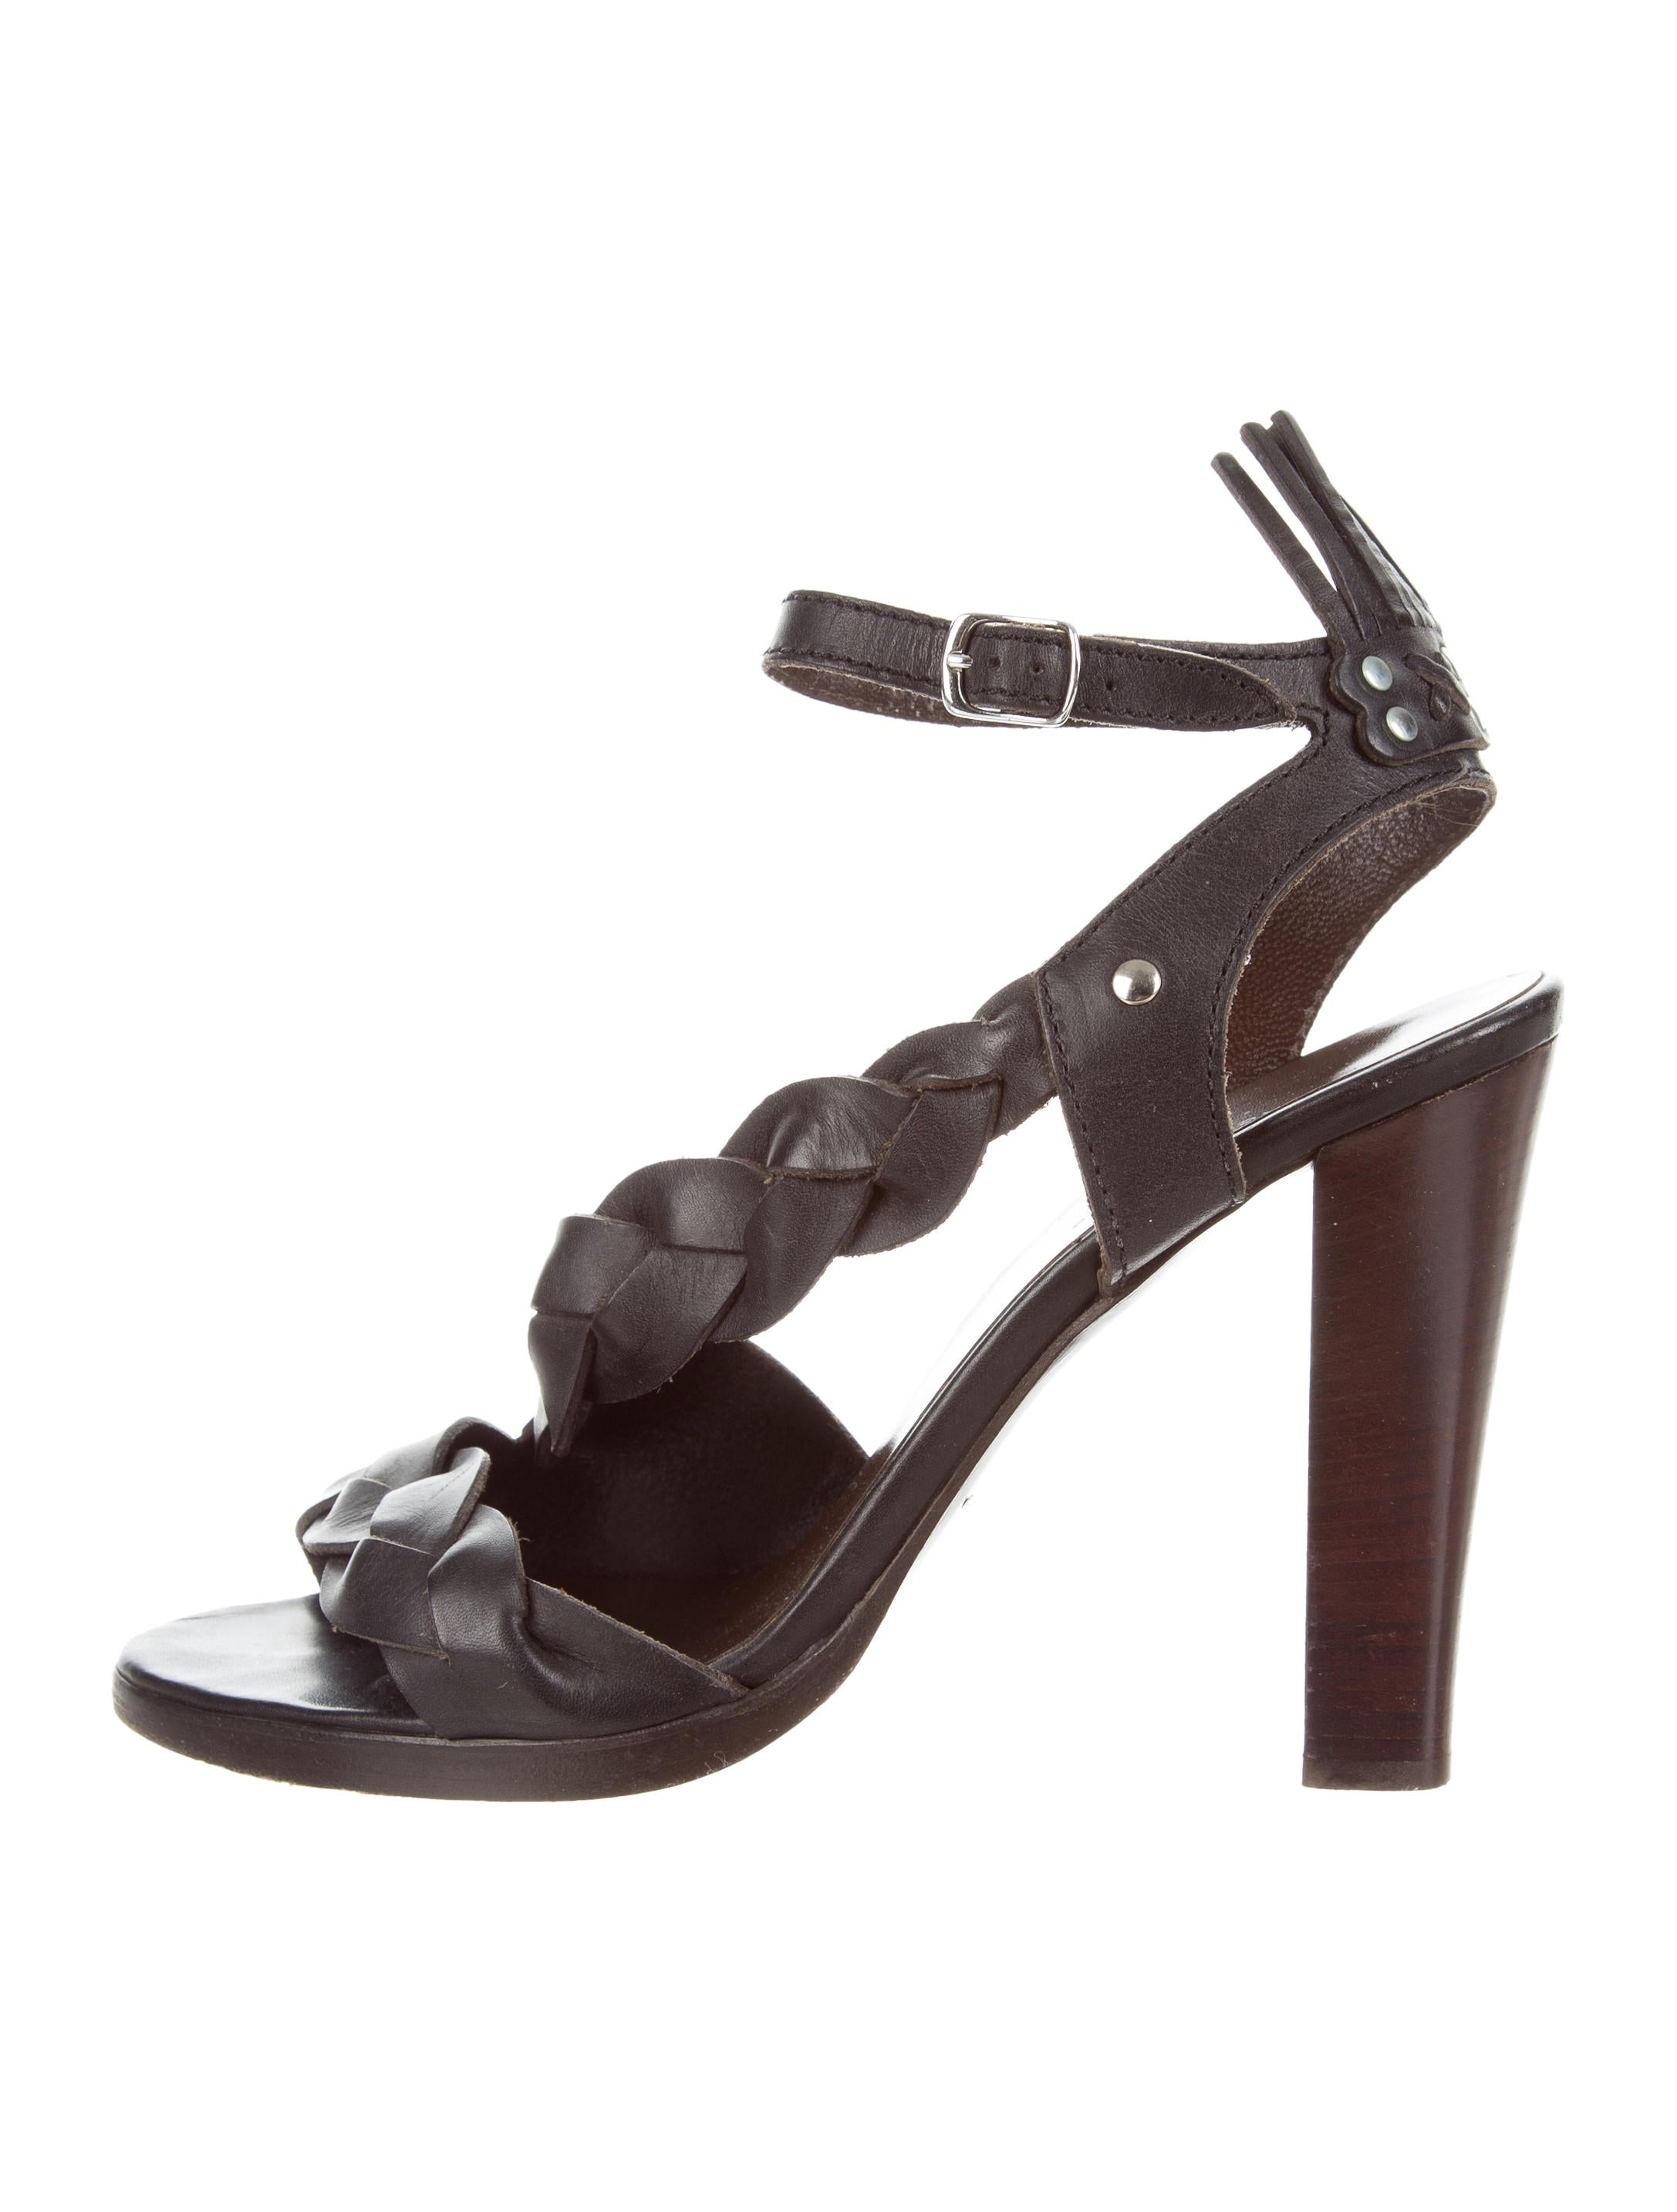 2014 newest for sale geniue stockist online Balenciaga Braided Leather Sandals buy cheap buy 3ni8iLB4Si